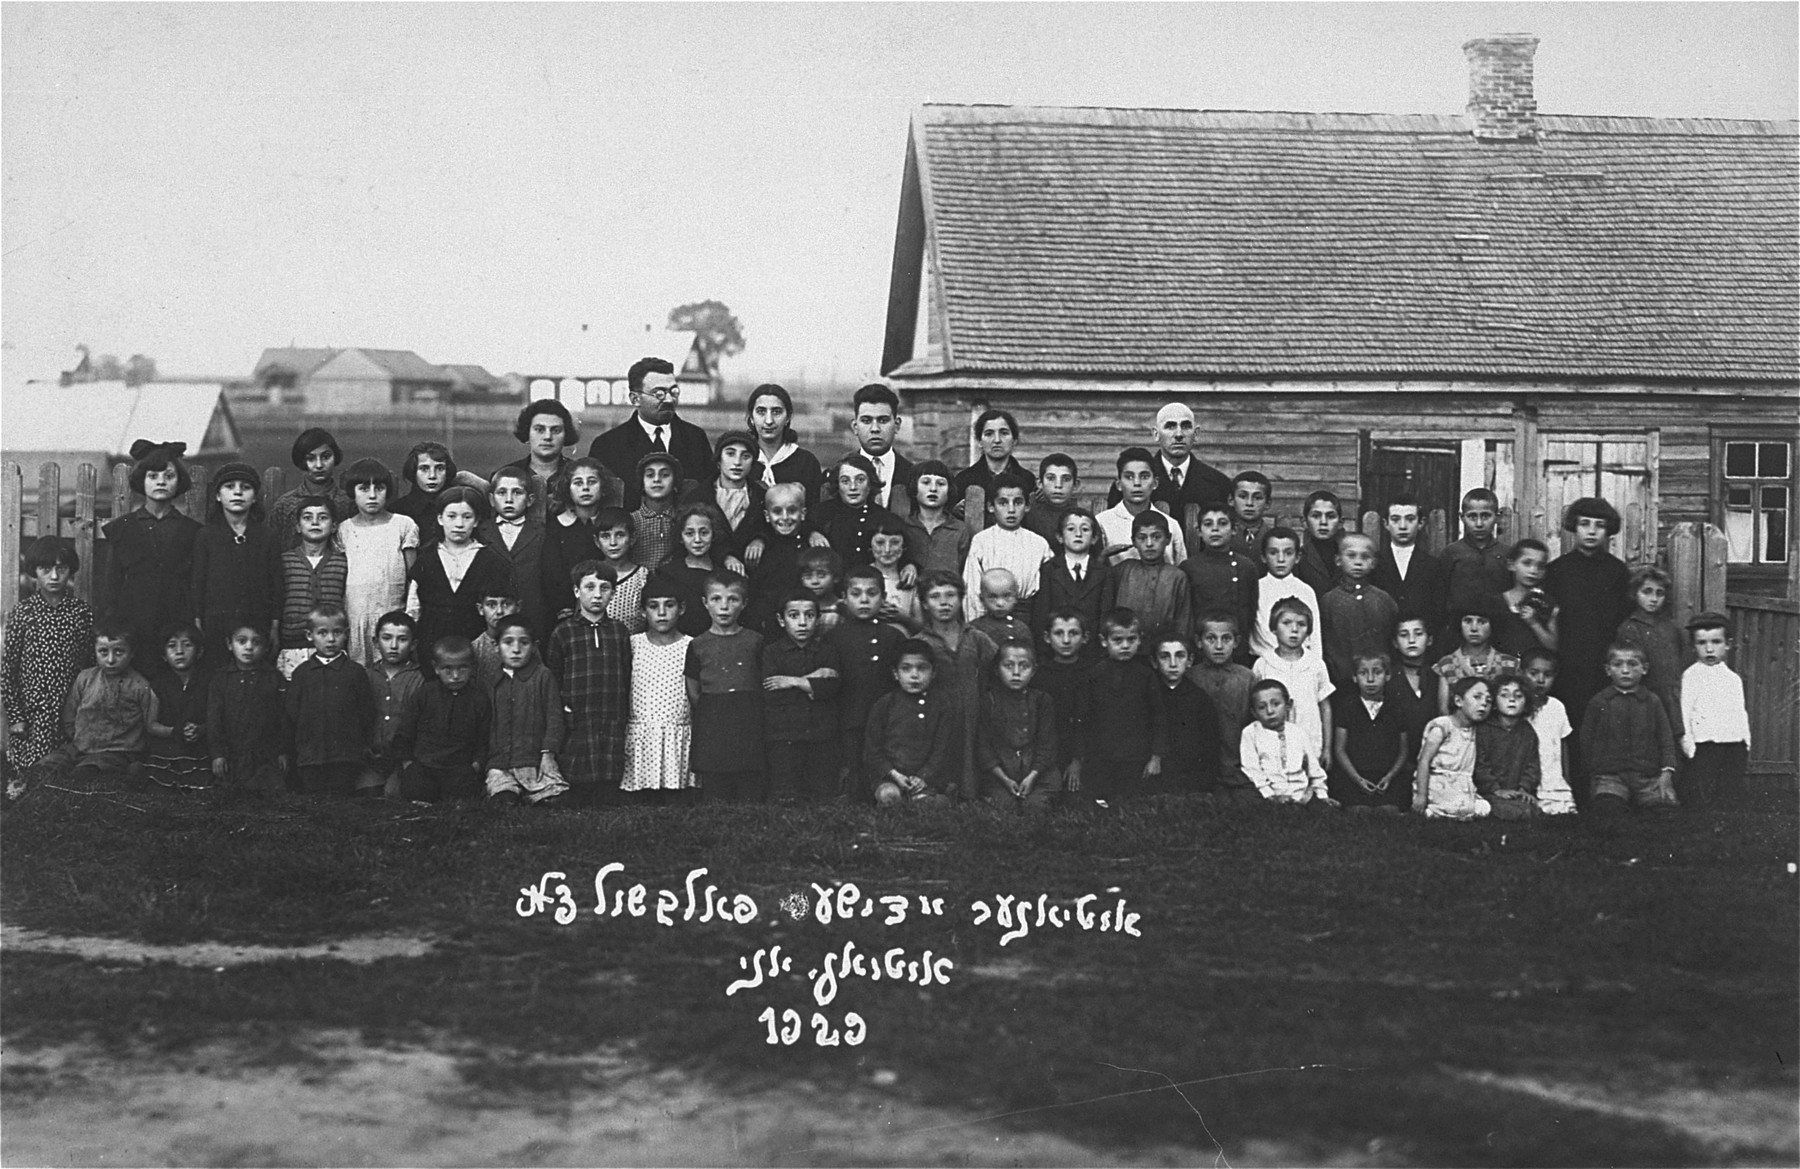 Group portrait of the students and teachers of the Jewish Volksschule (elementary school) in Utena.   Pictured in the back row, center, is Joseph Gar.